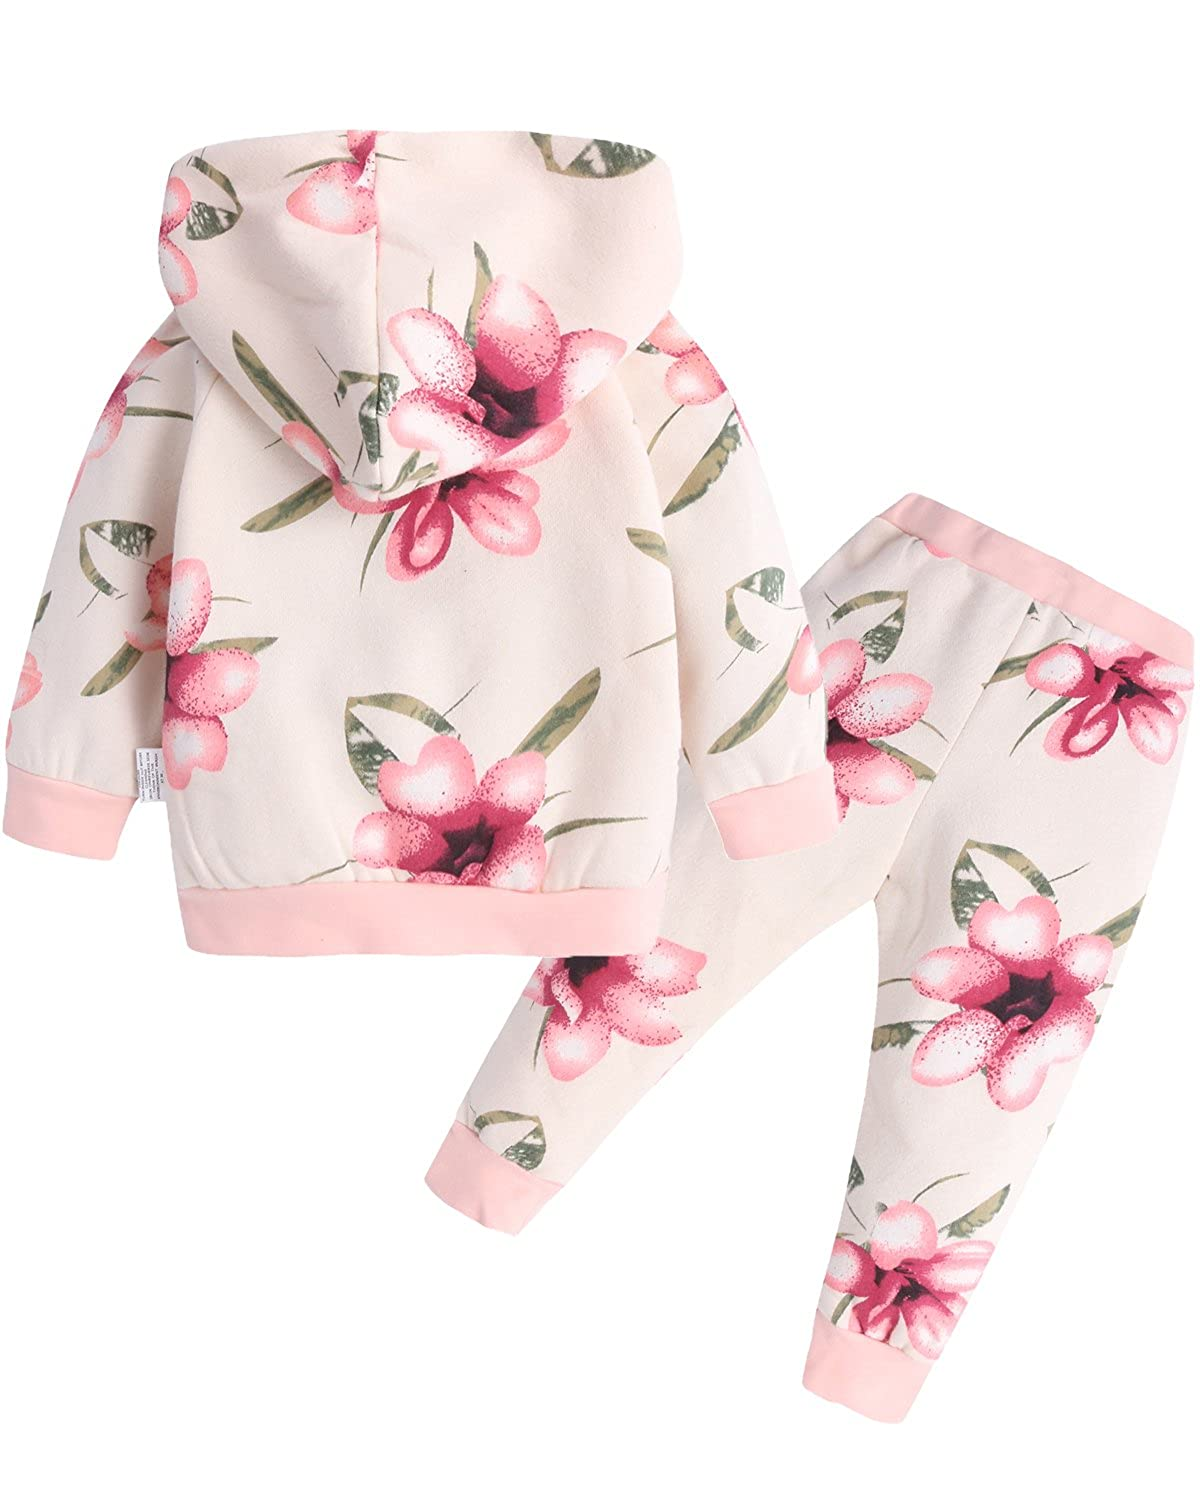 DaceStar 2pcs Infant Toddler Baby Girl Tracksuit Sweatshirt Kangaroo Pocket Floral Hoodie Tops and Pants Outfit Clothes Set